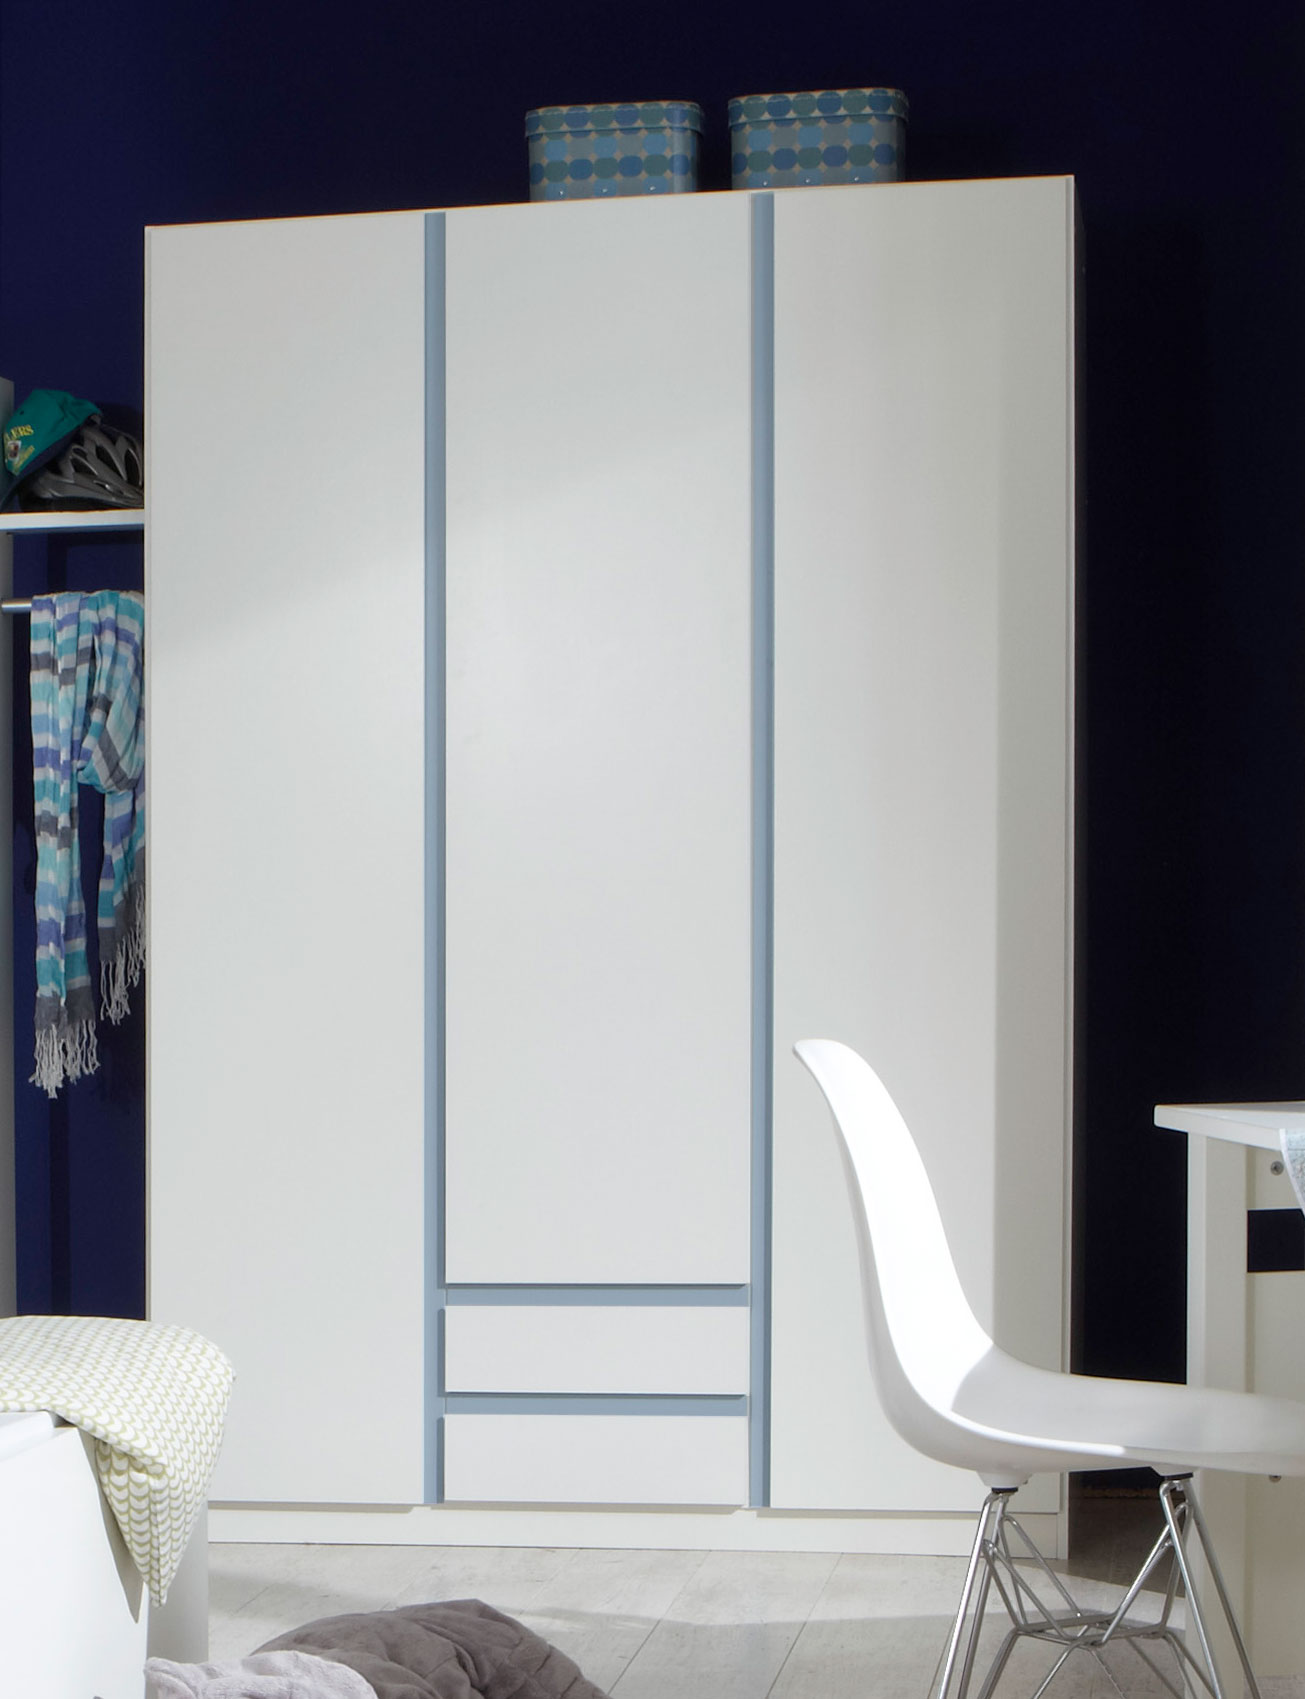 Armoire contemporaine 3 portes/2 tiroirs blanc alpin/décor bleu denim Mandy